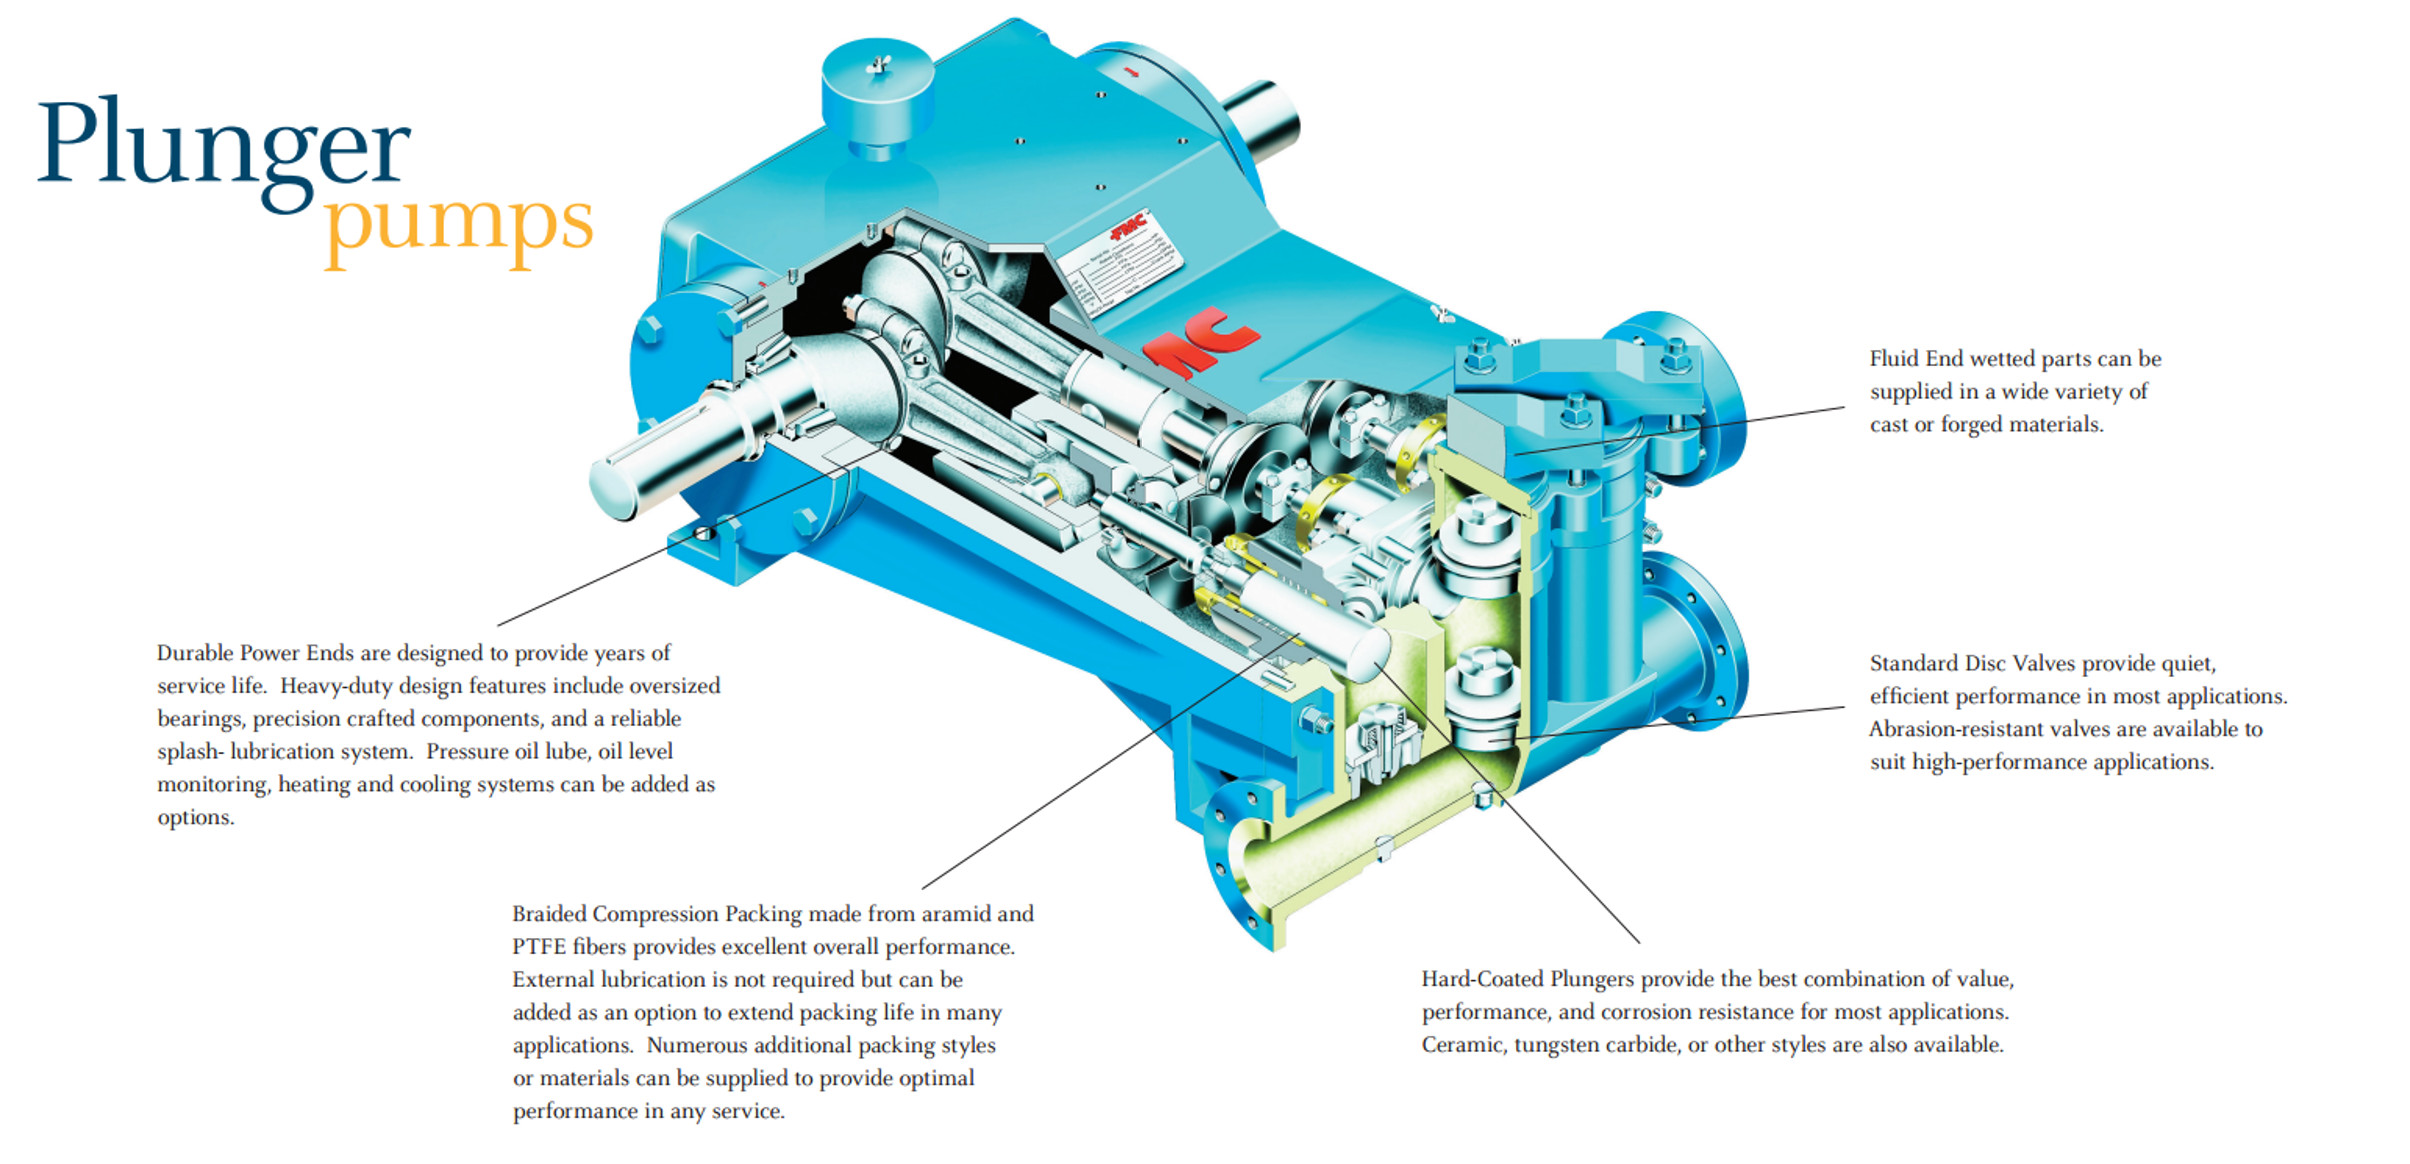 FMC Technologies Pumps - Frontier Power Products